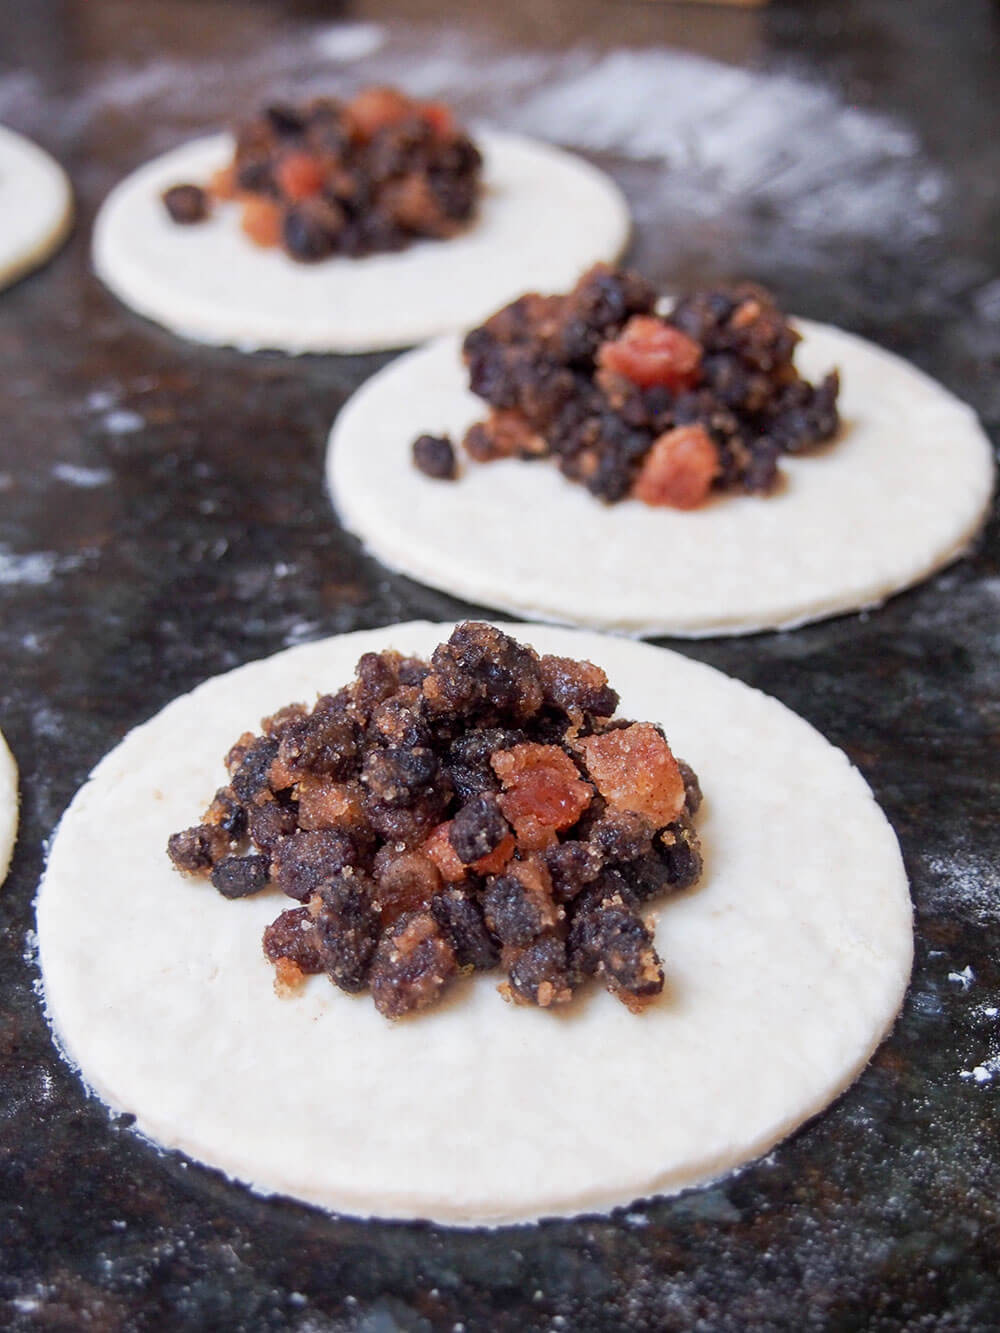 adding filling to Eccles cakes - crisp currant filled pastries